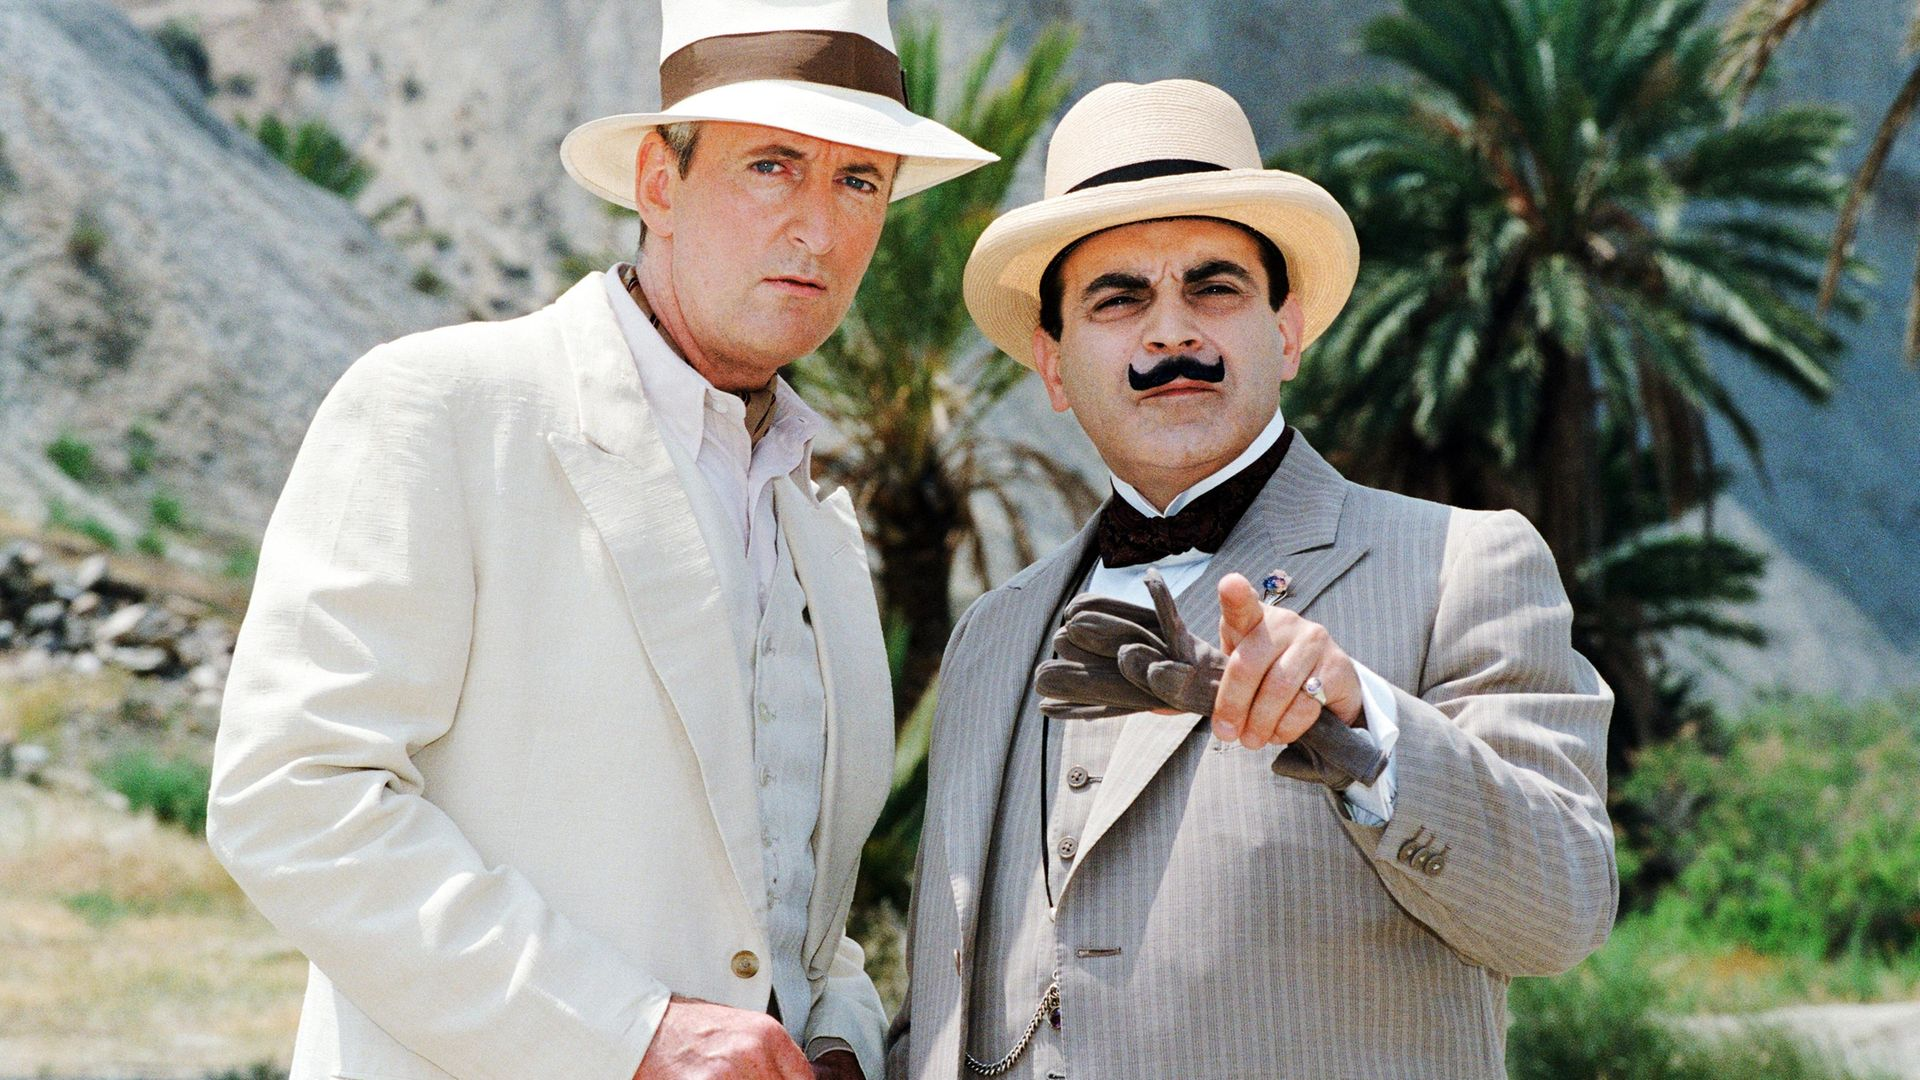 David Suchet at Hercule Poirot and Hugh Fraser as Captain Hastings, 1992 - Credit: Photo by Daily Mirror/Mirrorpix/Mirrorpix via Getty Images